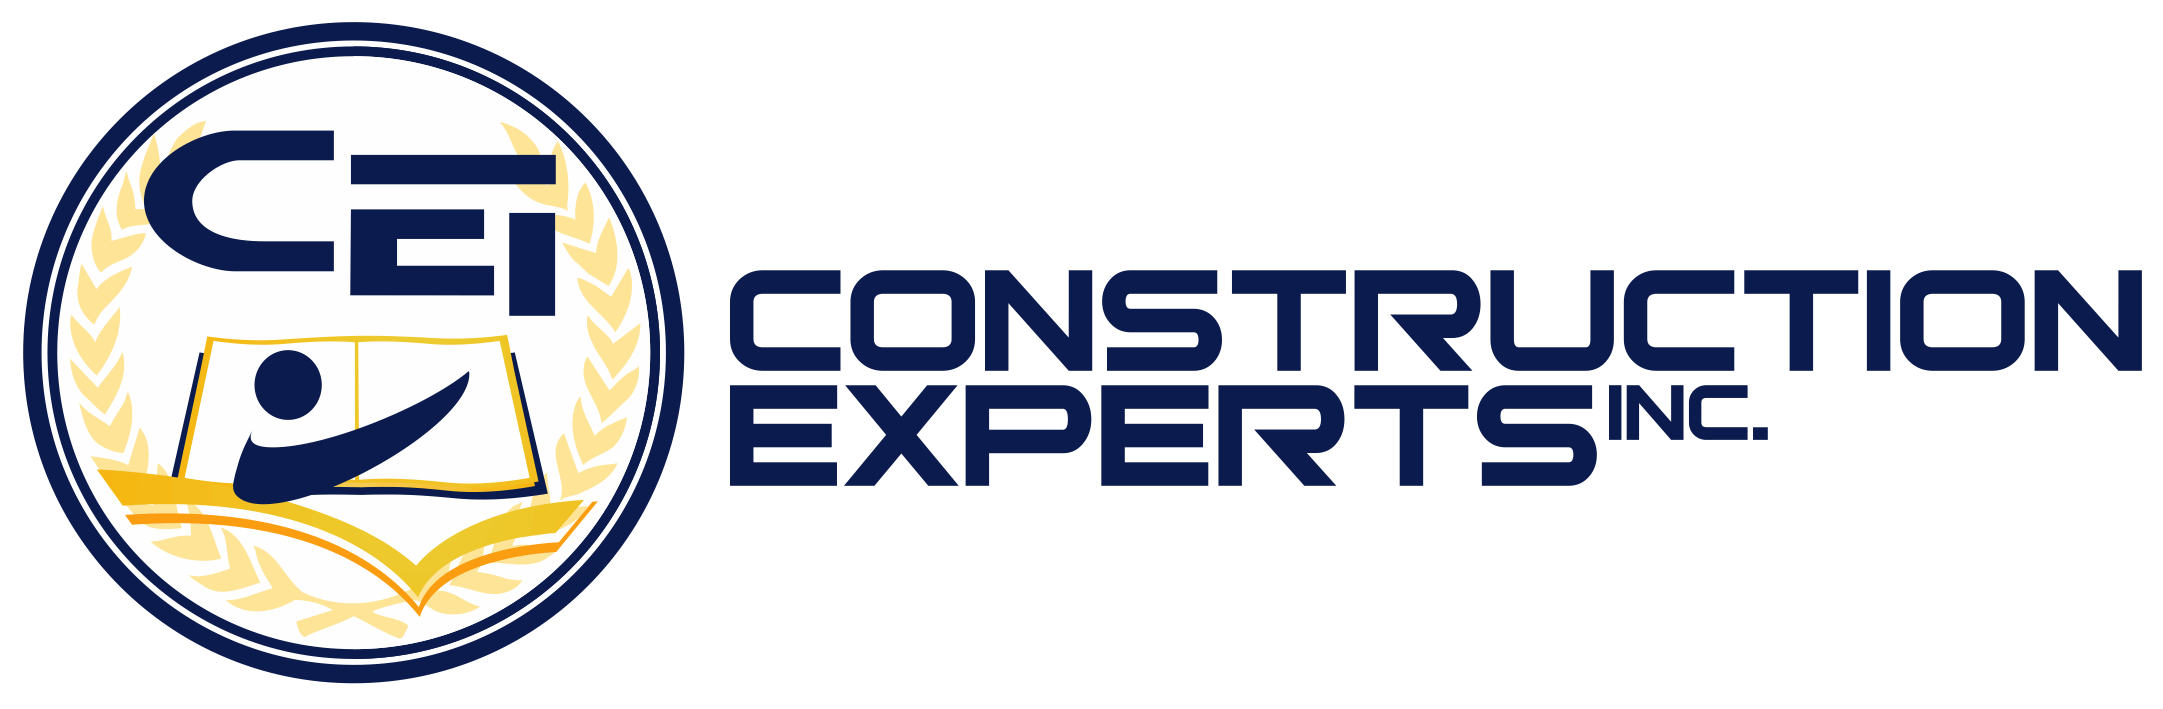 Construction Experts Inc - Construction Classes Online